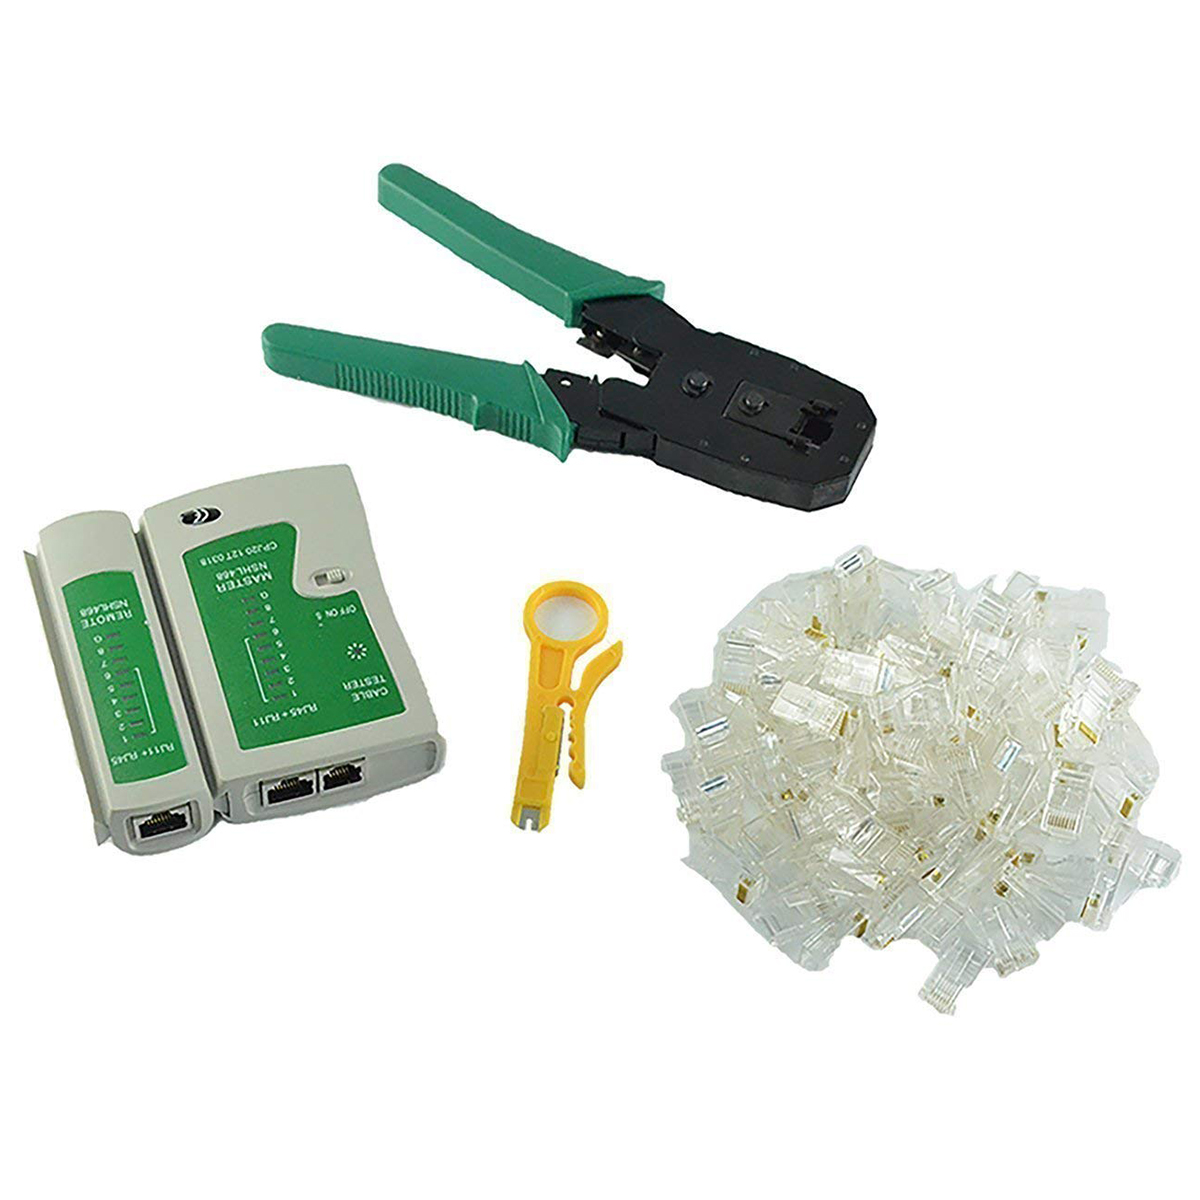 Network Ethernet LAN Kit 4 in 1 Cable Tester +Crimping Plier Crimper + Wire Stripper +100x Rj45 Cat5 Cat5e Connector Plug Netw